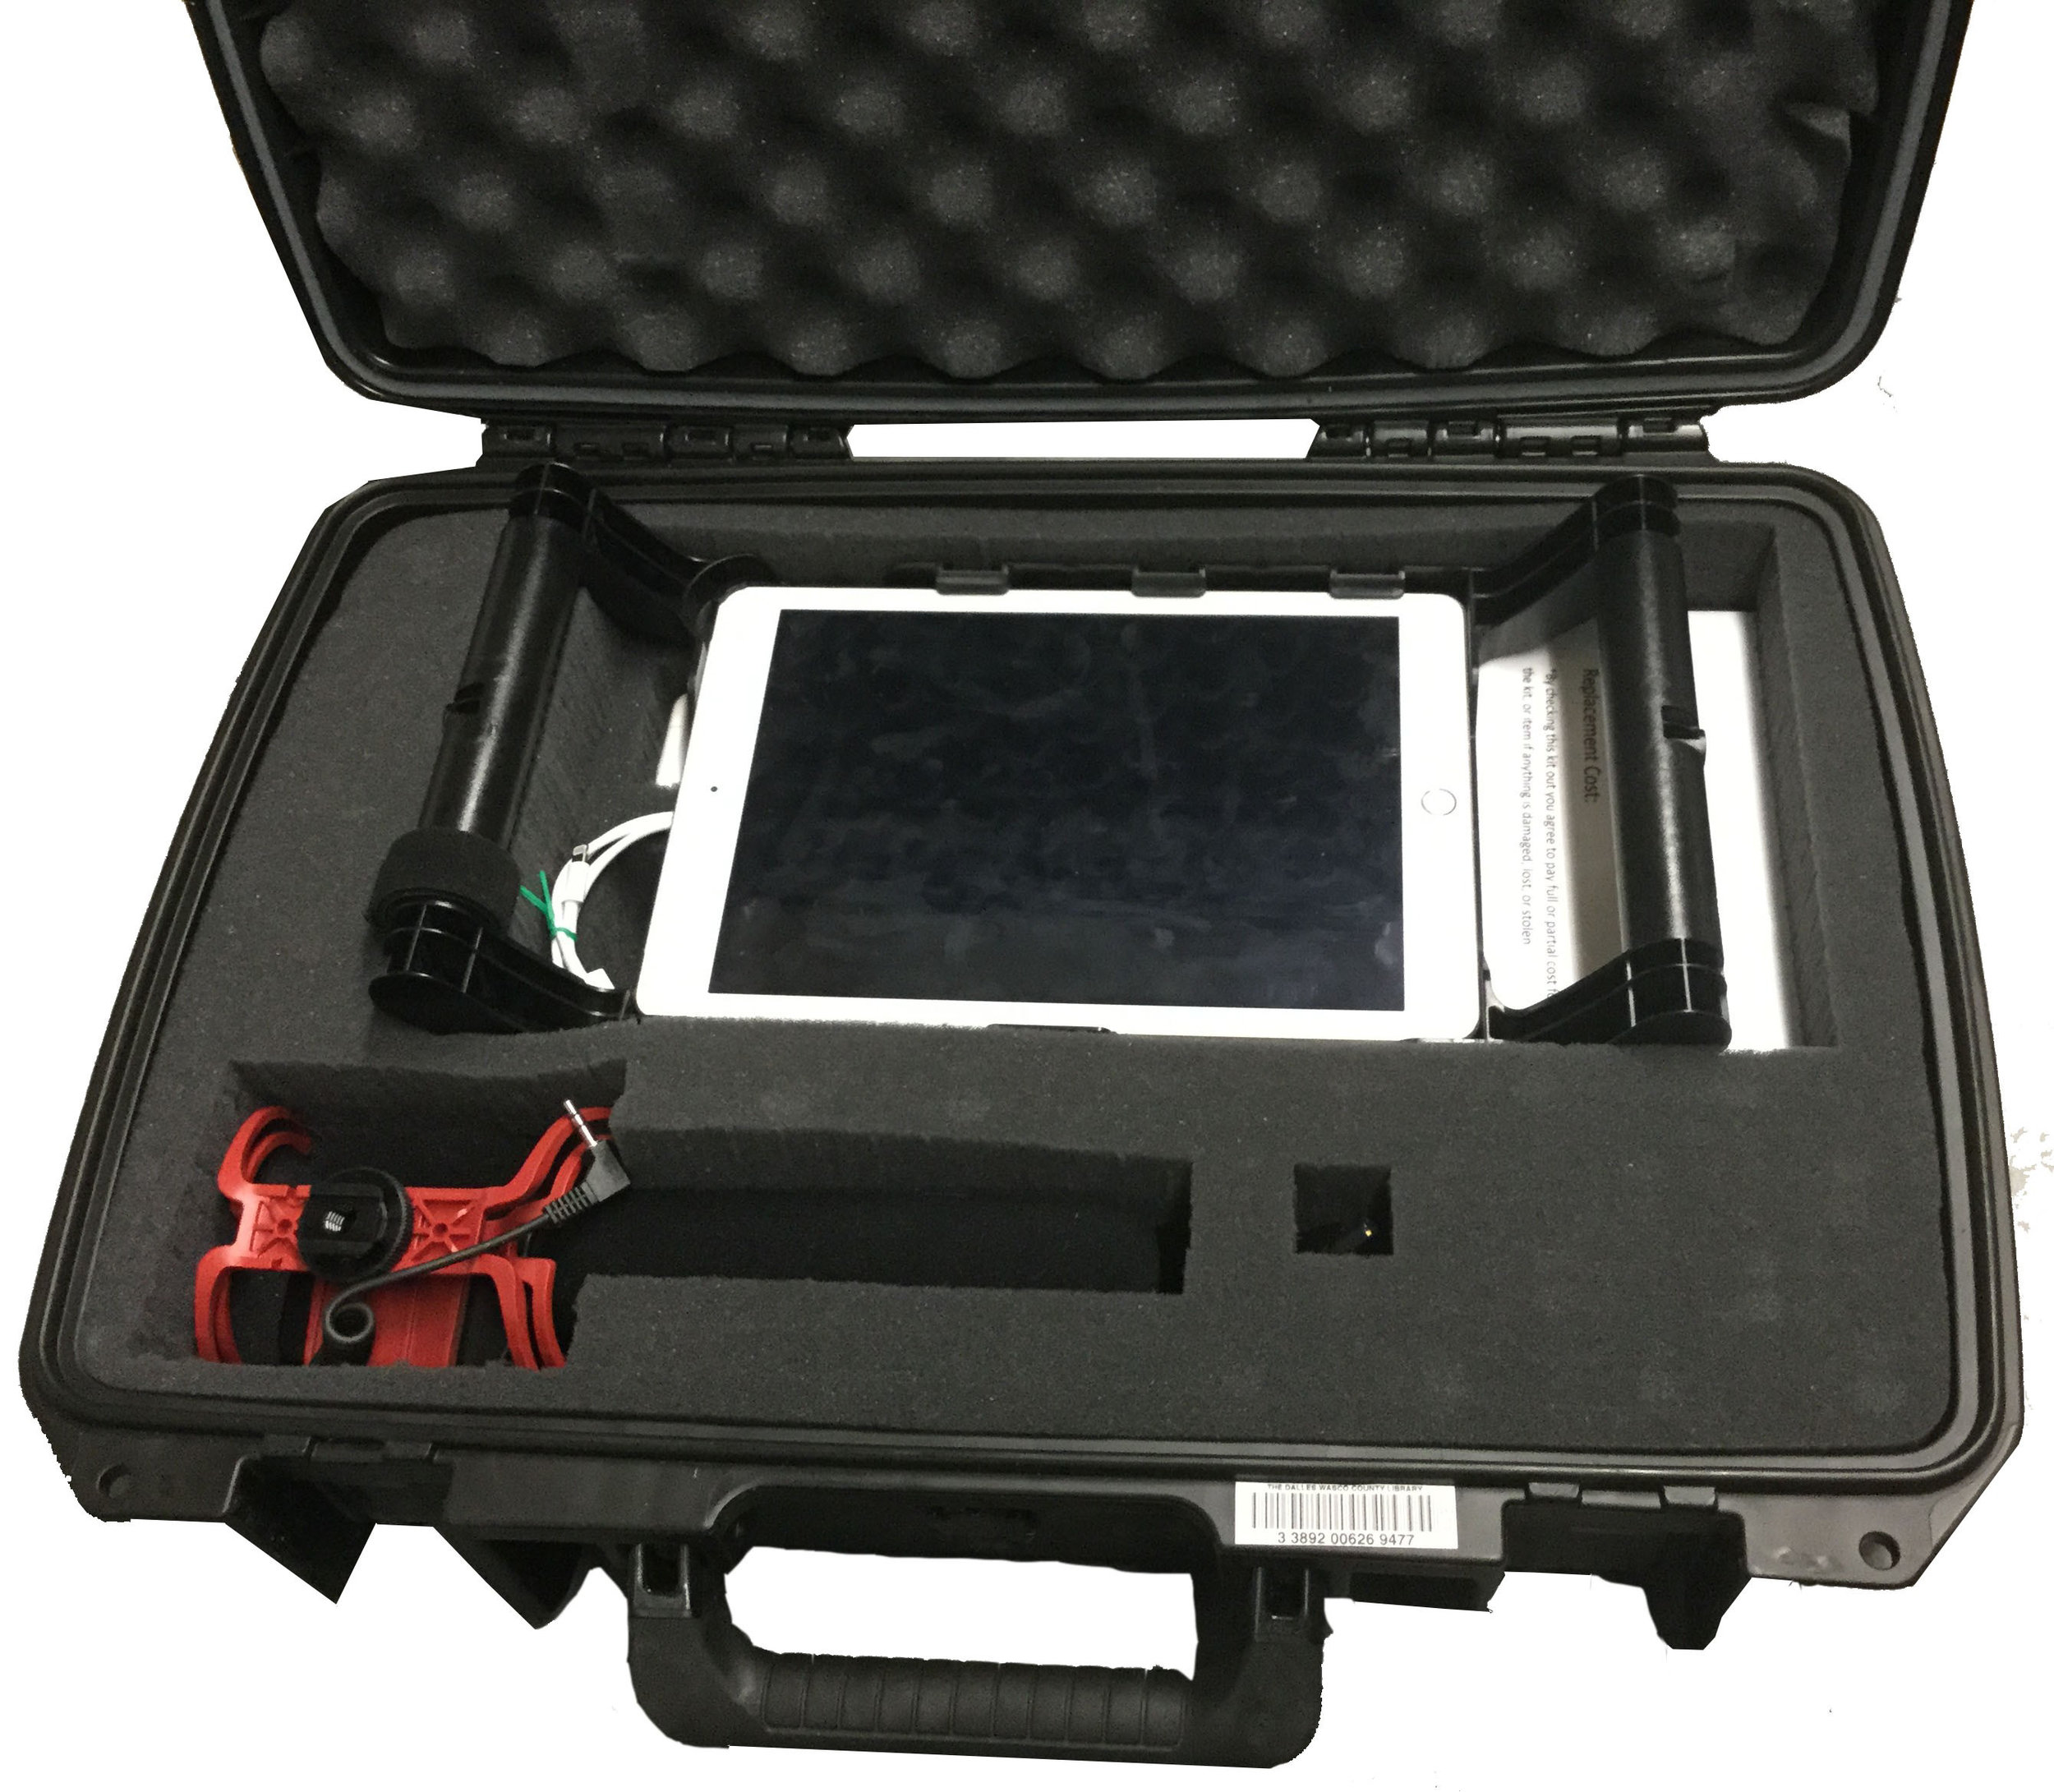 video kits - Shoot and edit your ownmovies with our iPad Pro and accessories.Checkout time: 3 weeks.